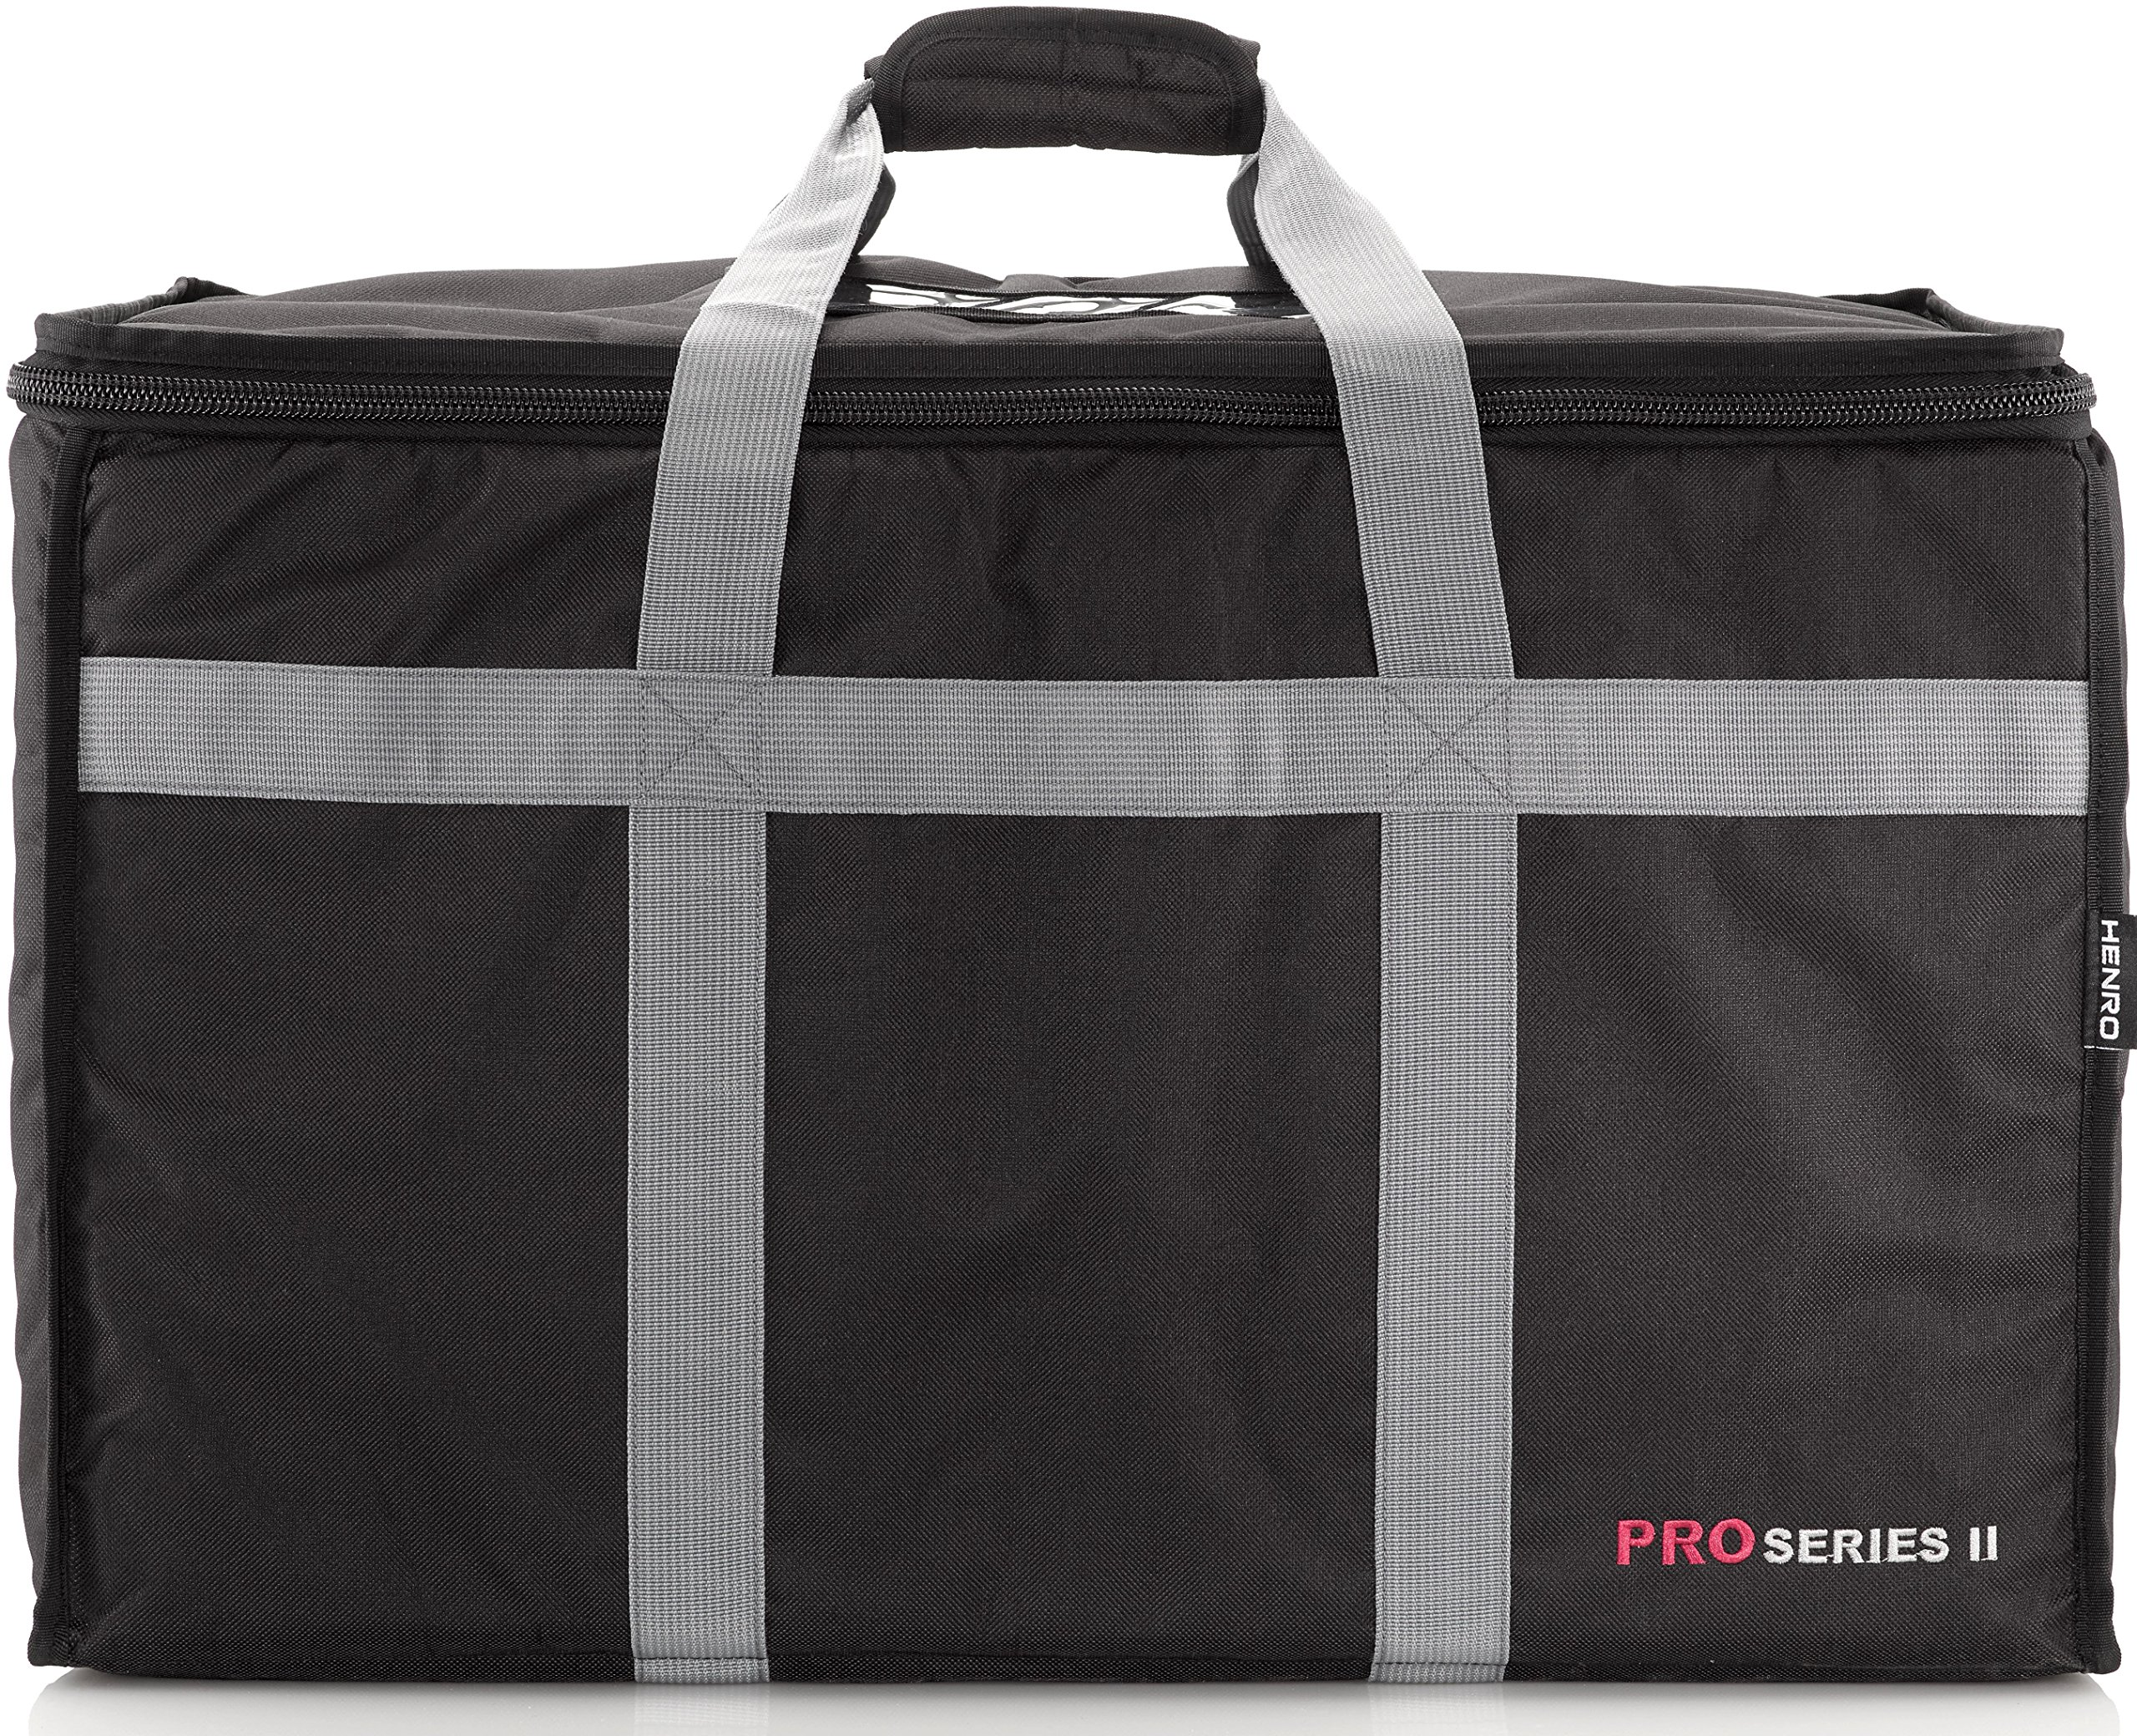 Insulated Commercial Food Delivery Bag - Professional Hot/Cold Thermal Carrier - Large (23'' x 14'' x 15''), Lightweight & Portable for Catering, Grocery Shopping or Parties & Holidays by Henro